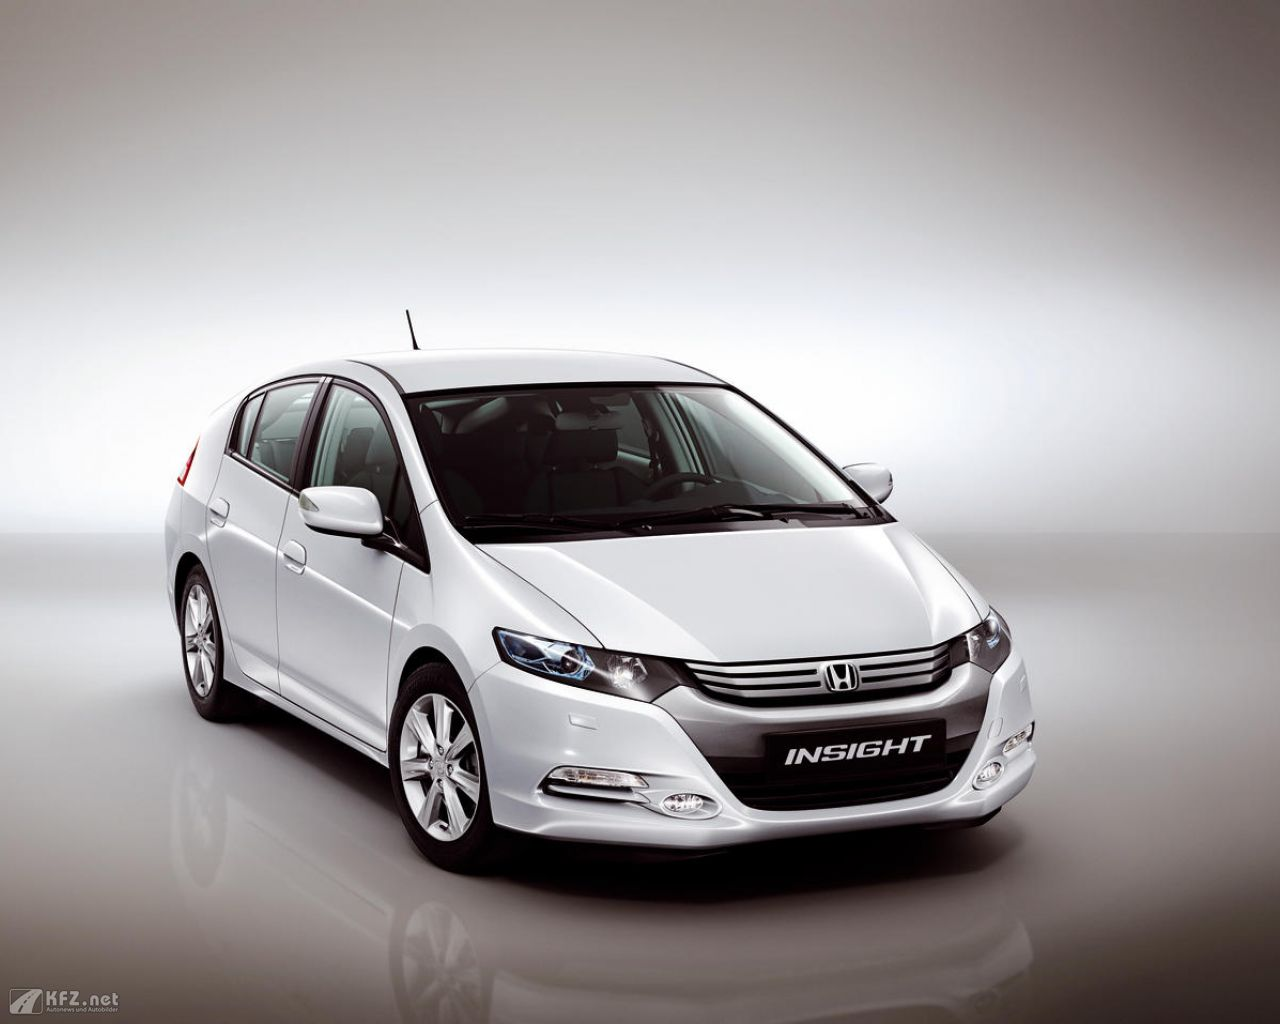 honda-insight-1280x1024-121